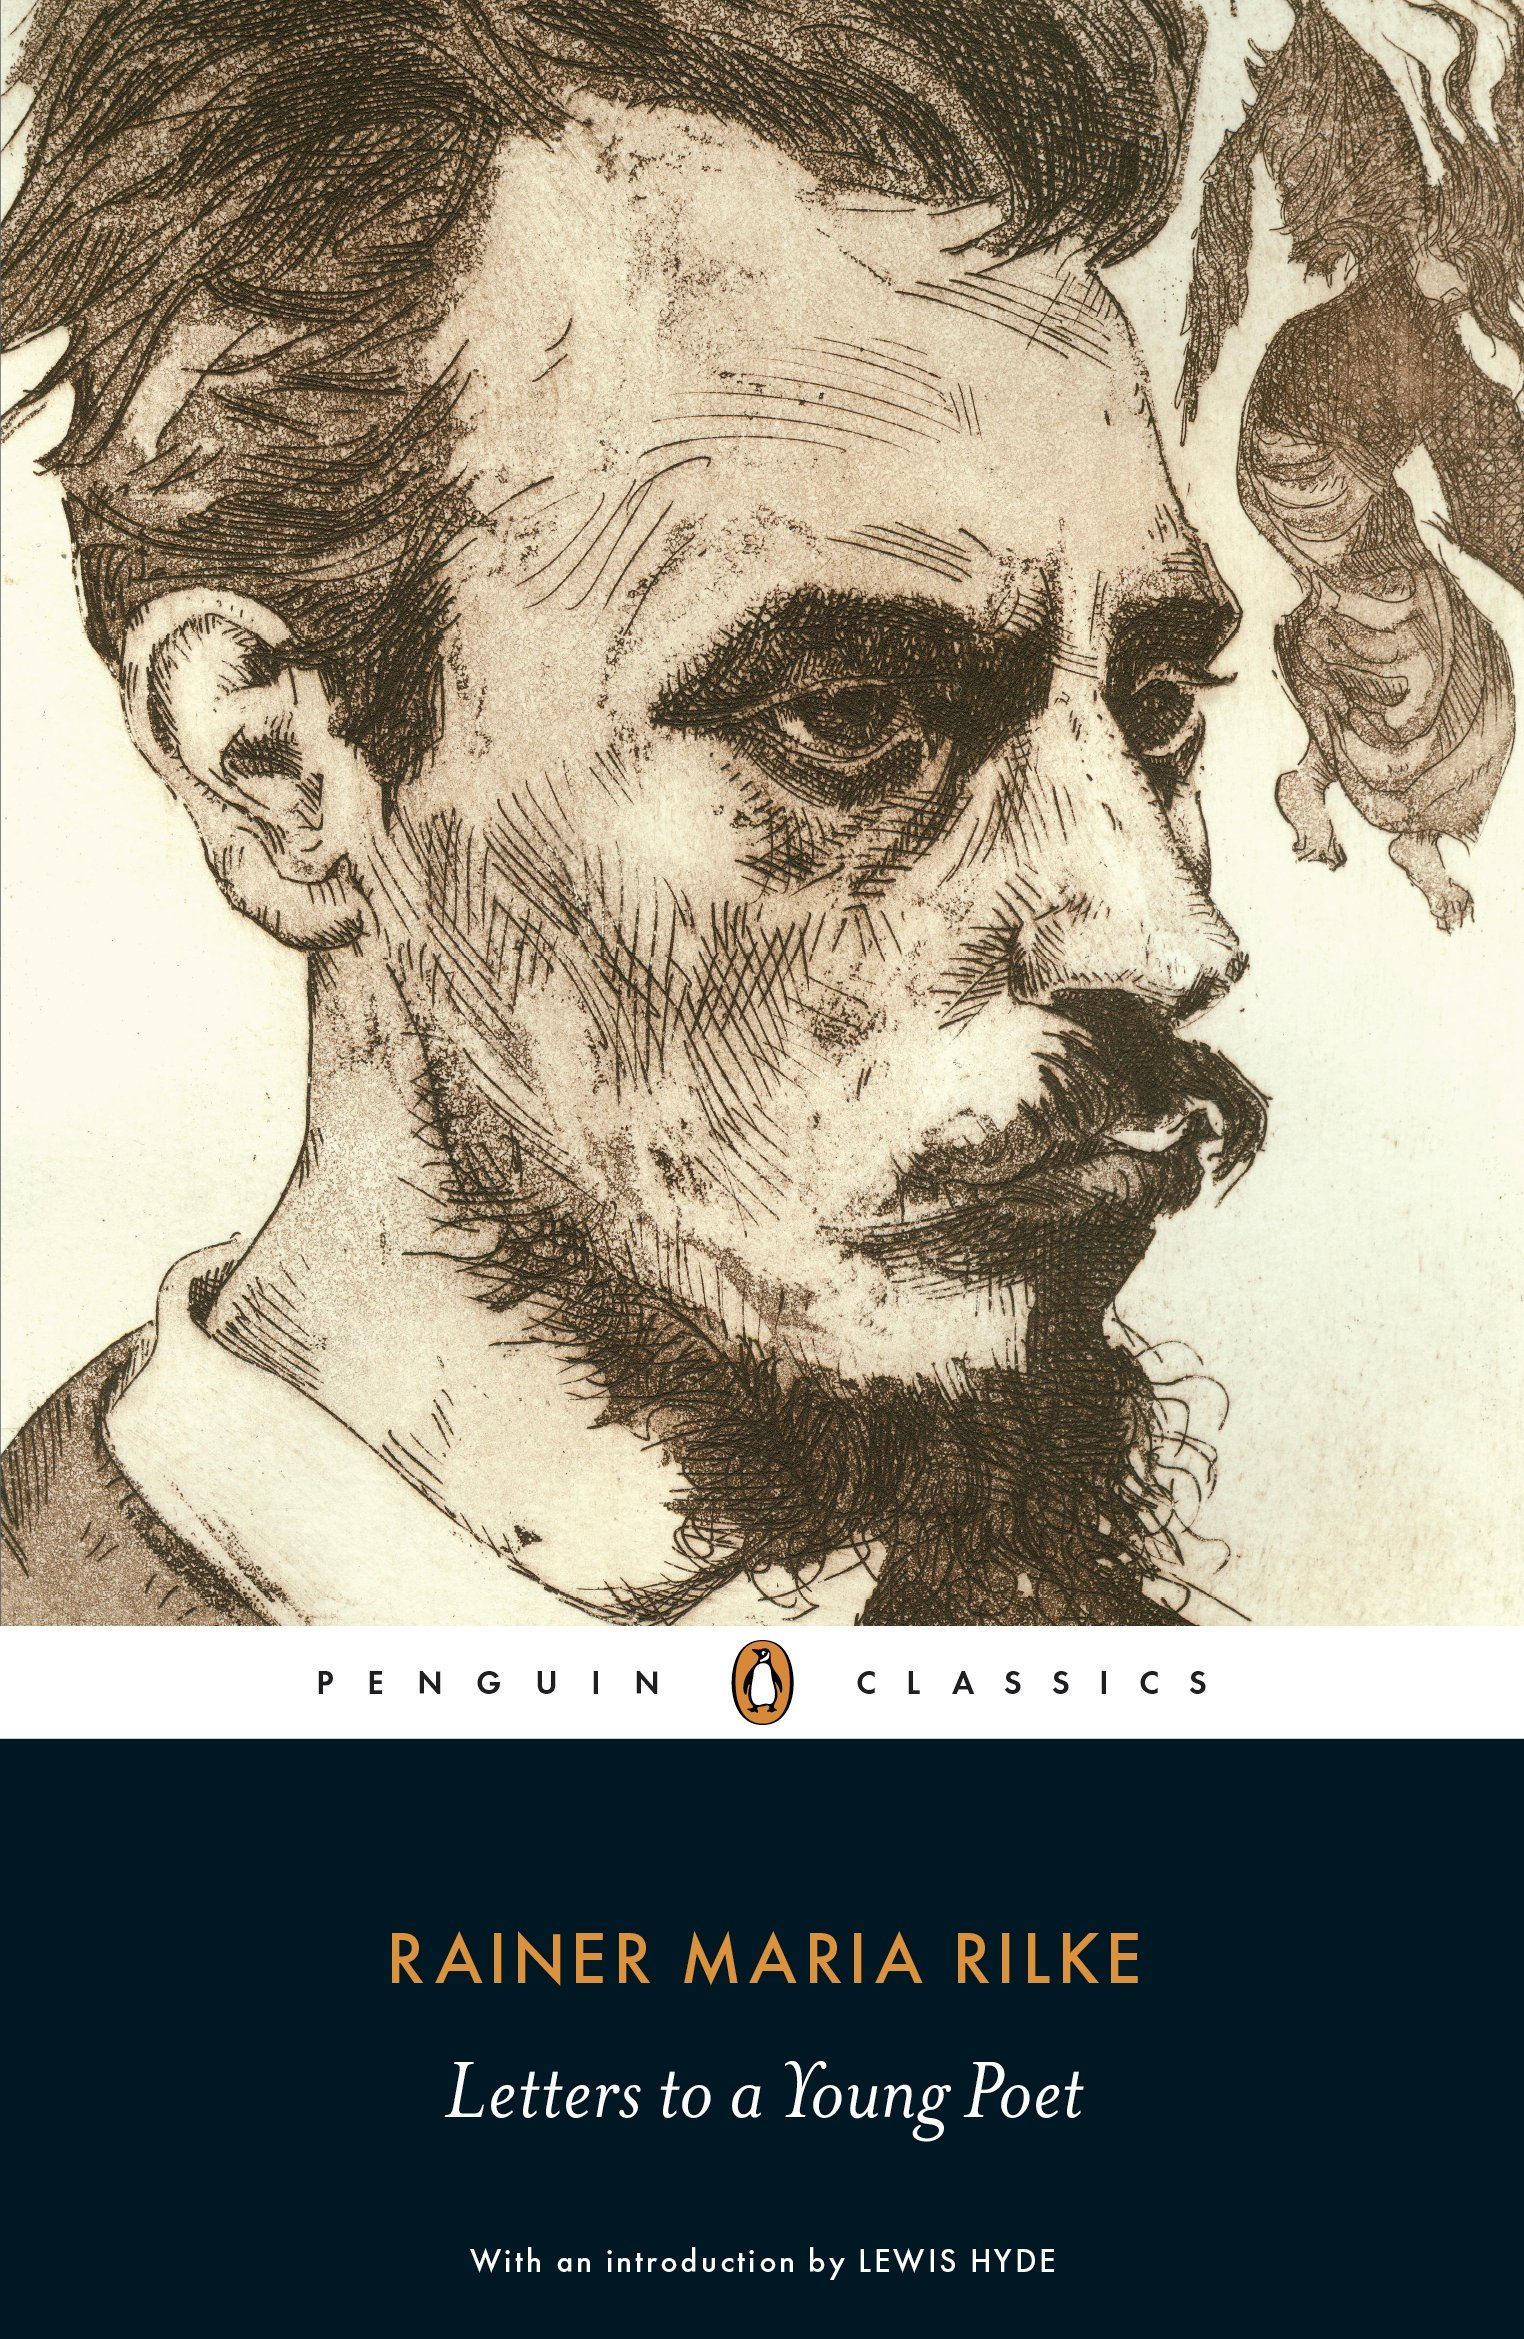 Letters to a Young Poet (Penguin Classics): Amazon.co.uk: Rilke, Rainer  Maria, Louth, Charlie: 2015141192321: Books